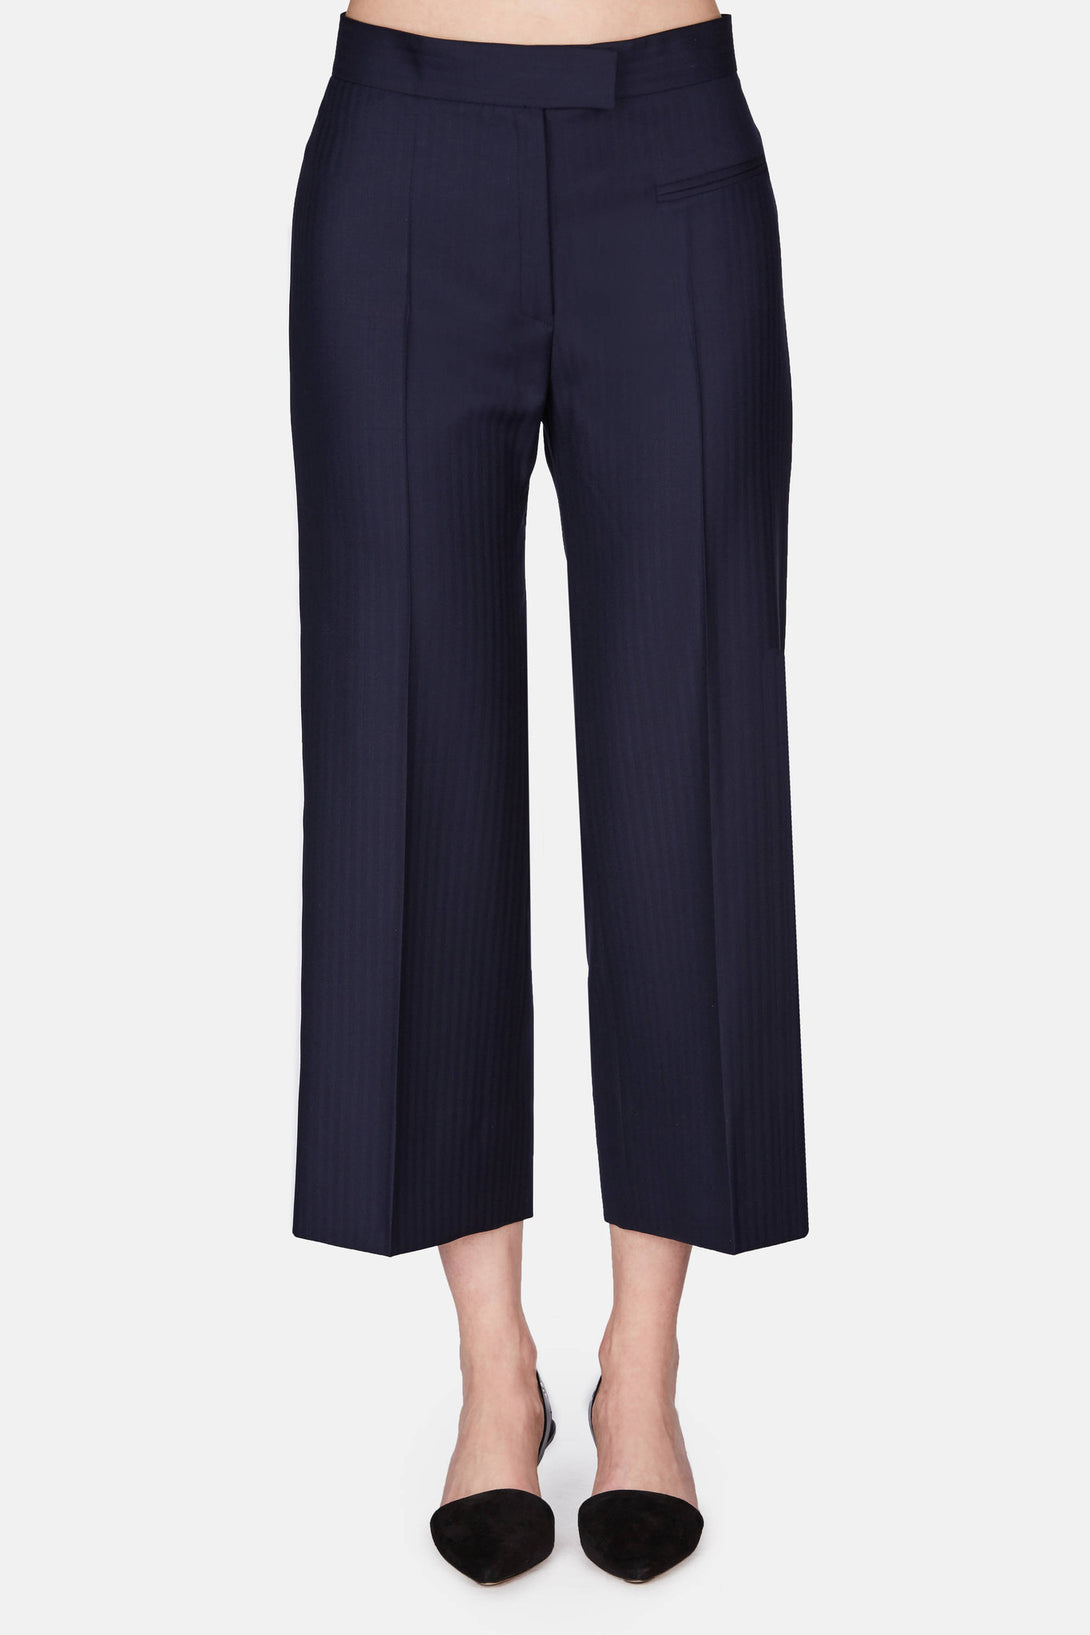 Thetis Cropped Pant - Marine